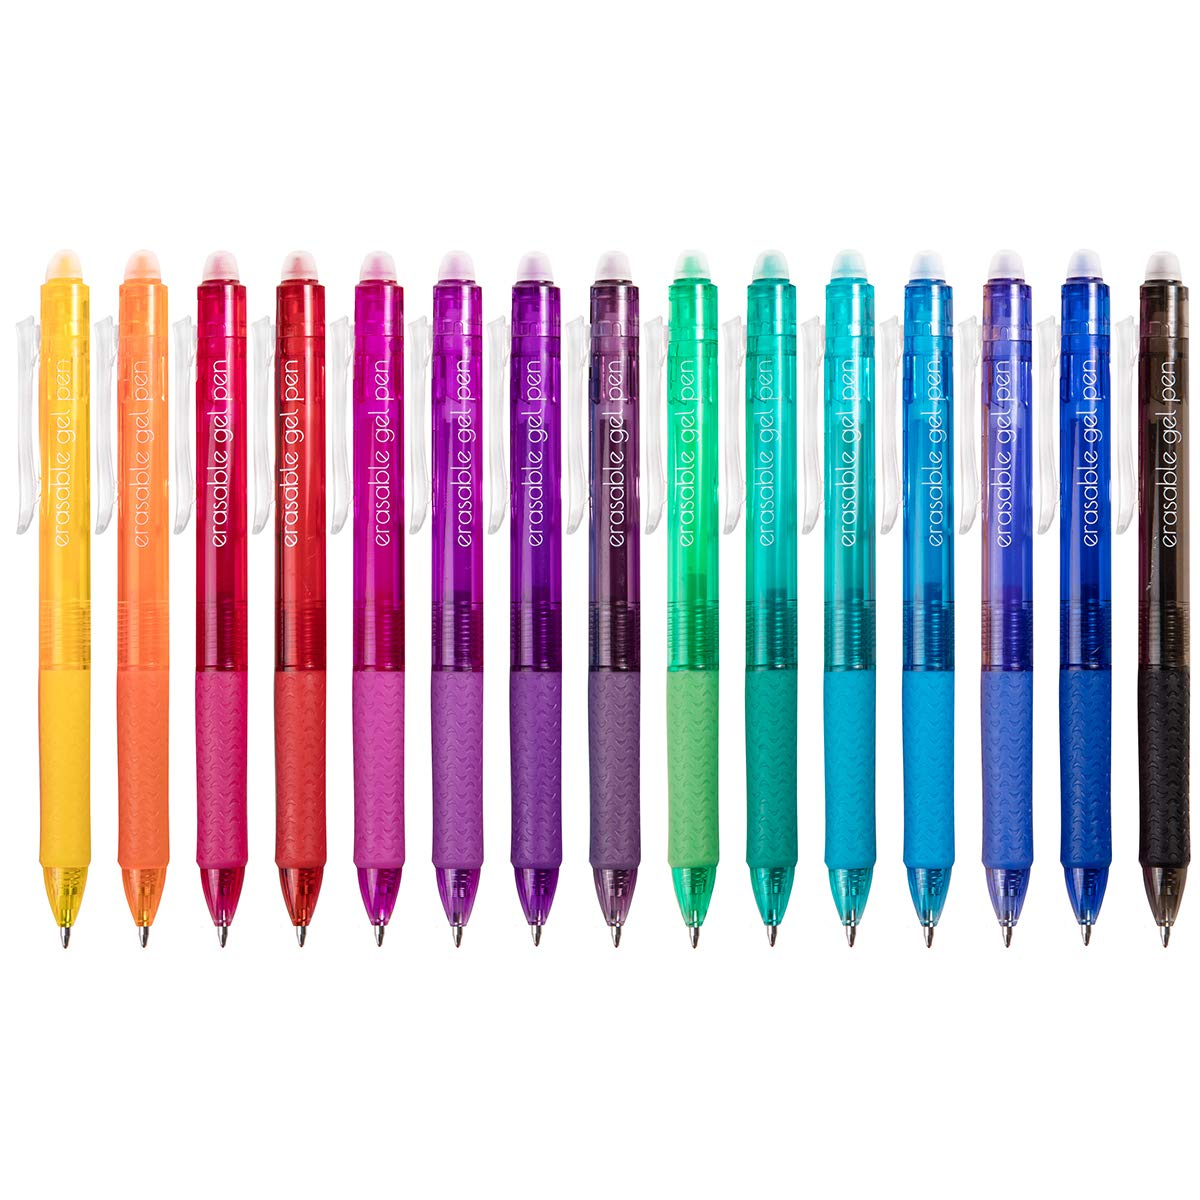 Erasable Gel Pens, 15 Colors Lineon Retractable Erasable Pens Clicker, Fine Point, Make Mistakes Disappear, Assorted Color Inks for Drawing Writing Planner and Crossword Puzzles by Lineon